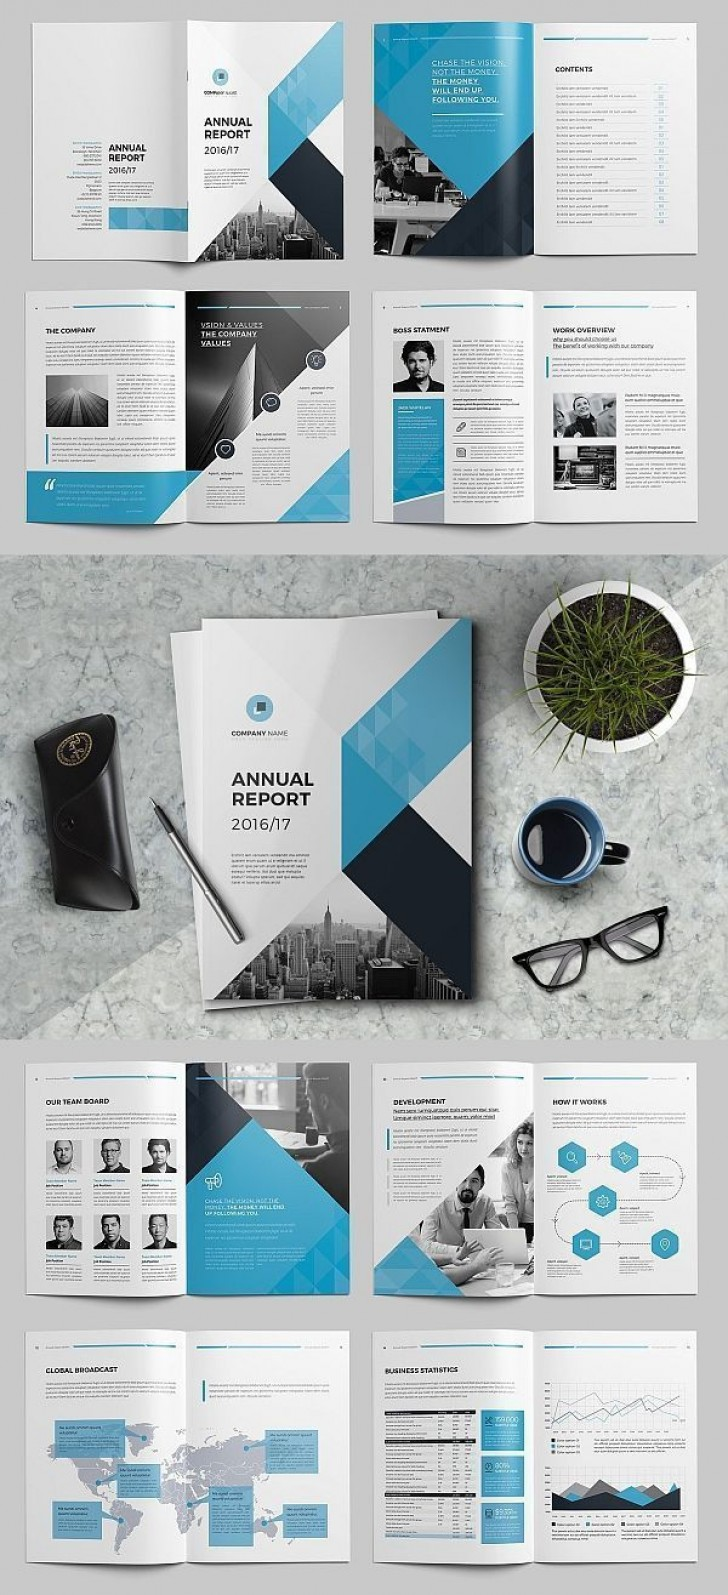 001 Incredible Free Annual Report Template Indesign Image  Adobe Non Profit728